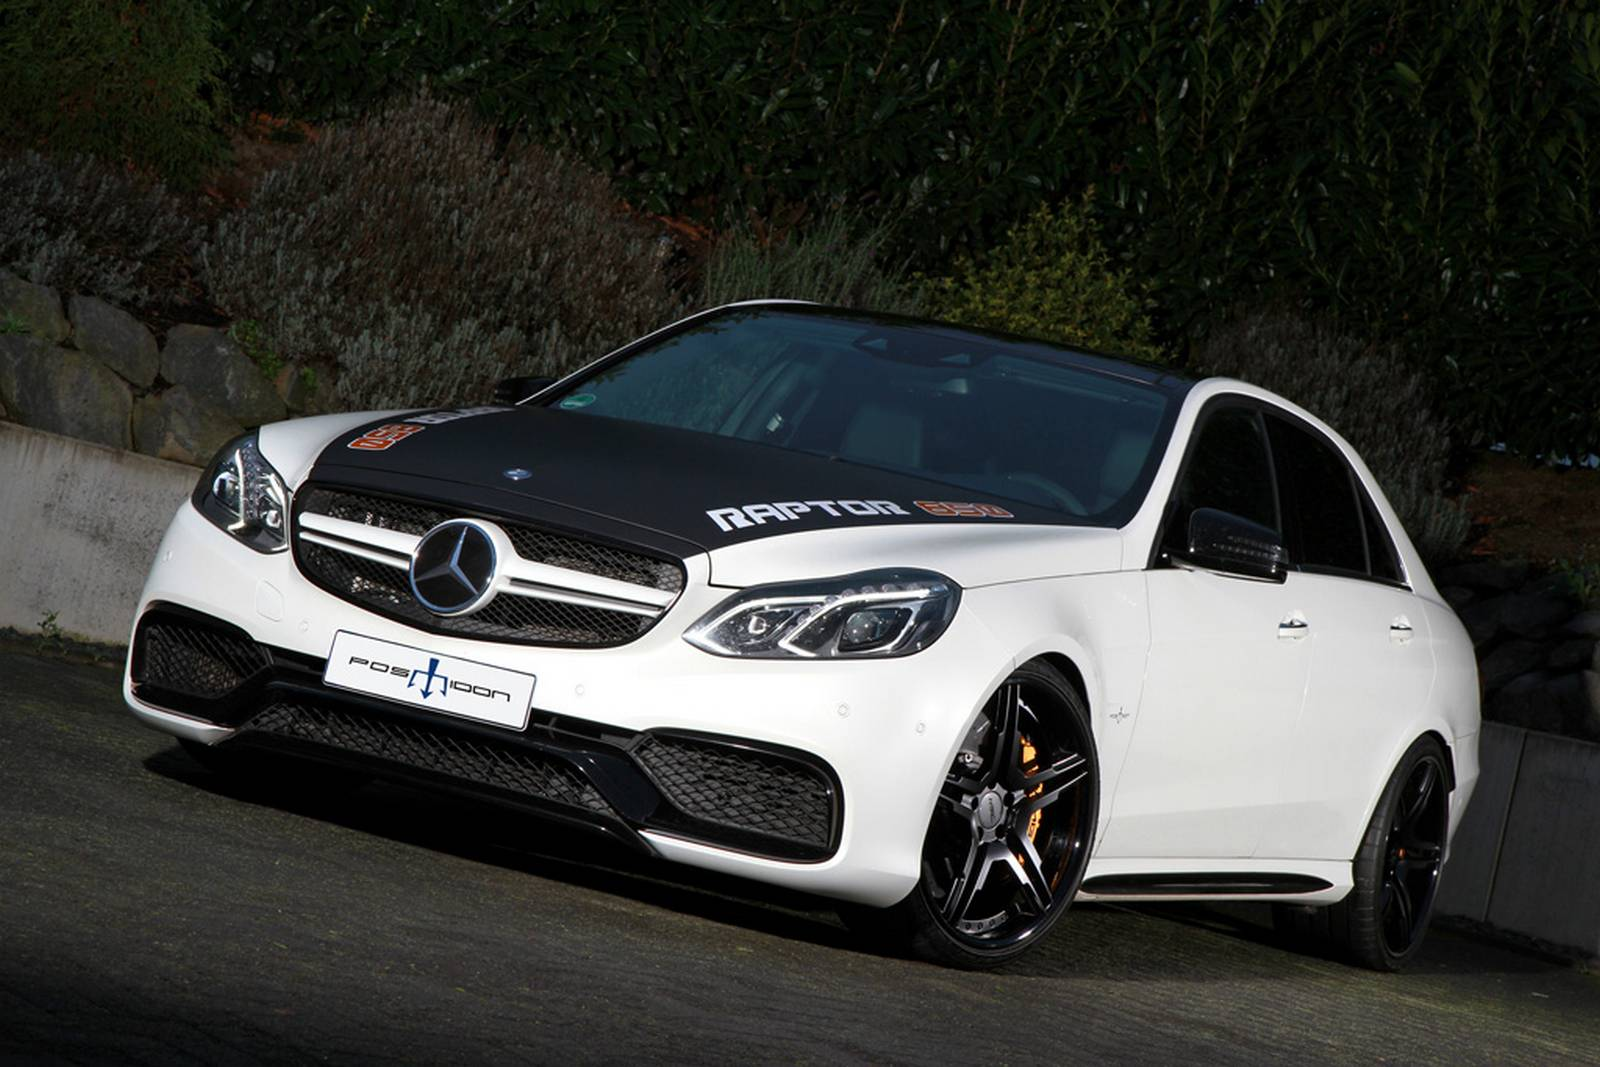 Official mercedes benz e63 amg by posaidon gtspirit for Mercedes benz e amg